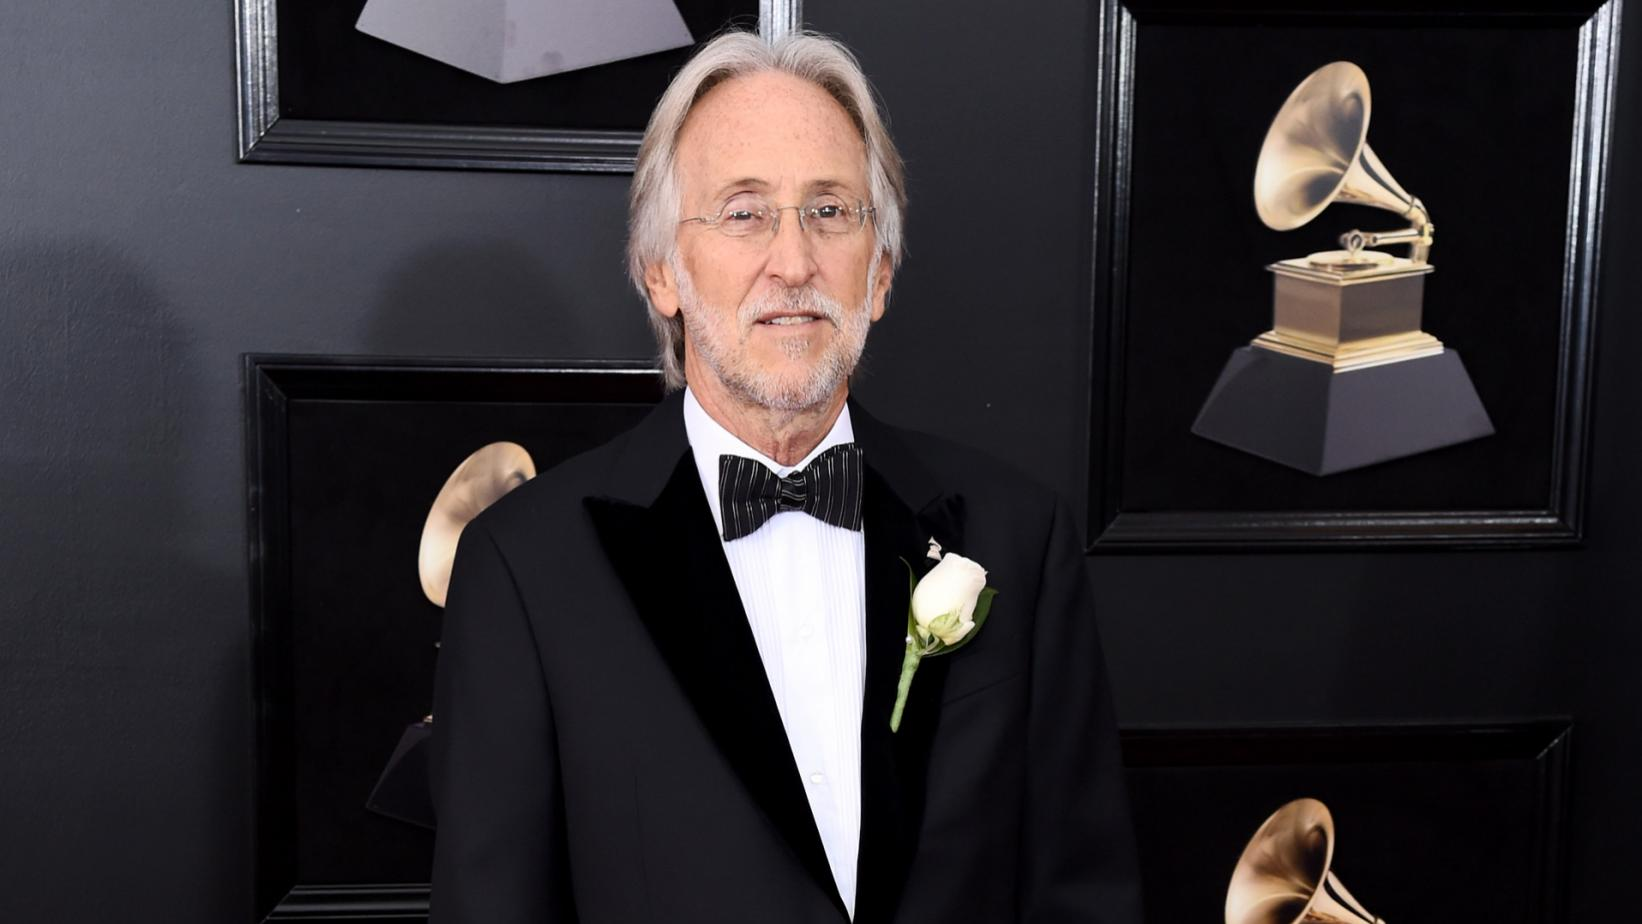 SANTA MONICA, CALIF. (FNN NEWS) — The Recording Academy™ announced today that President/CEO Neil Portnow has chosen not to seek an extension on his current contract, which expires in July 2019. Photo: Michael Kovac/Getty Images.